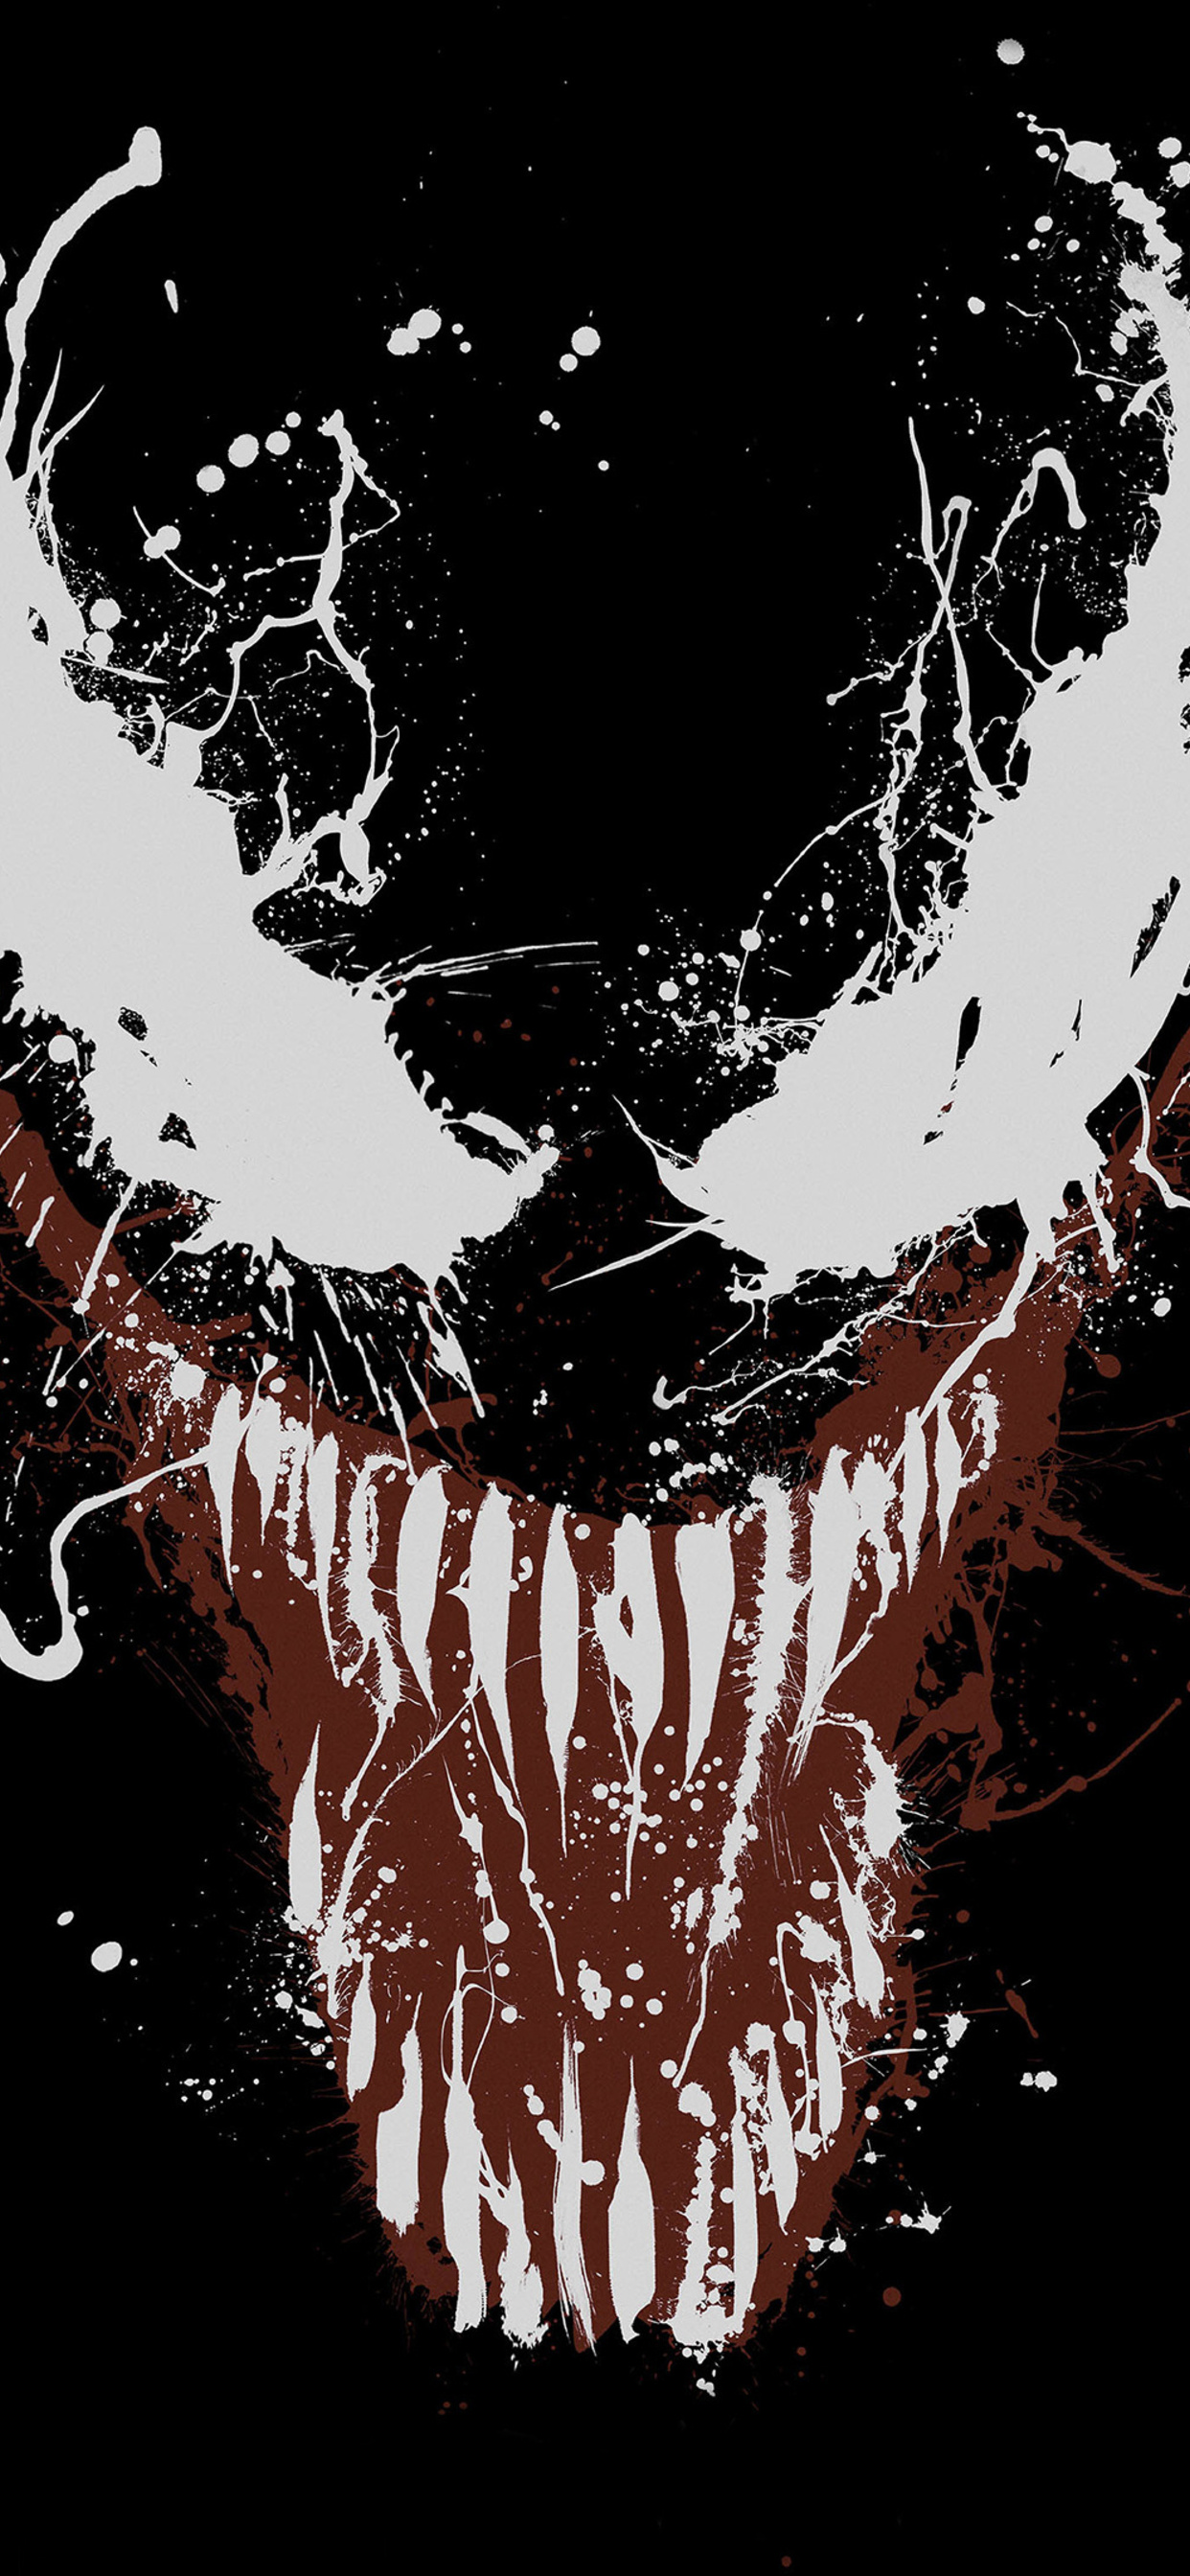 1242x2688 Venom Movie Poster 2018 Iphone Xs Max Hd 4k Wallpapers